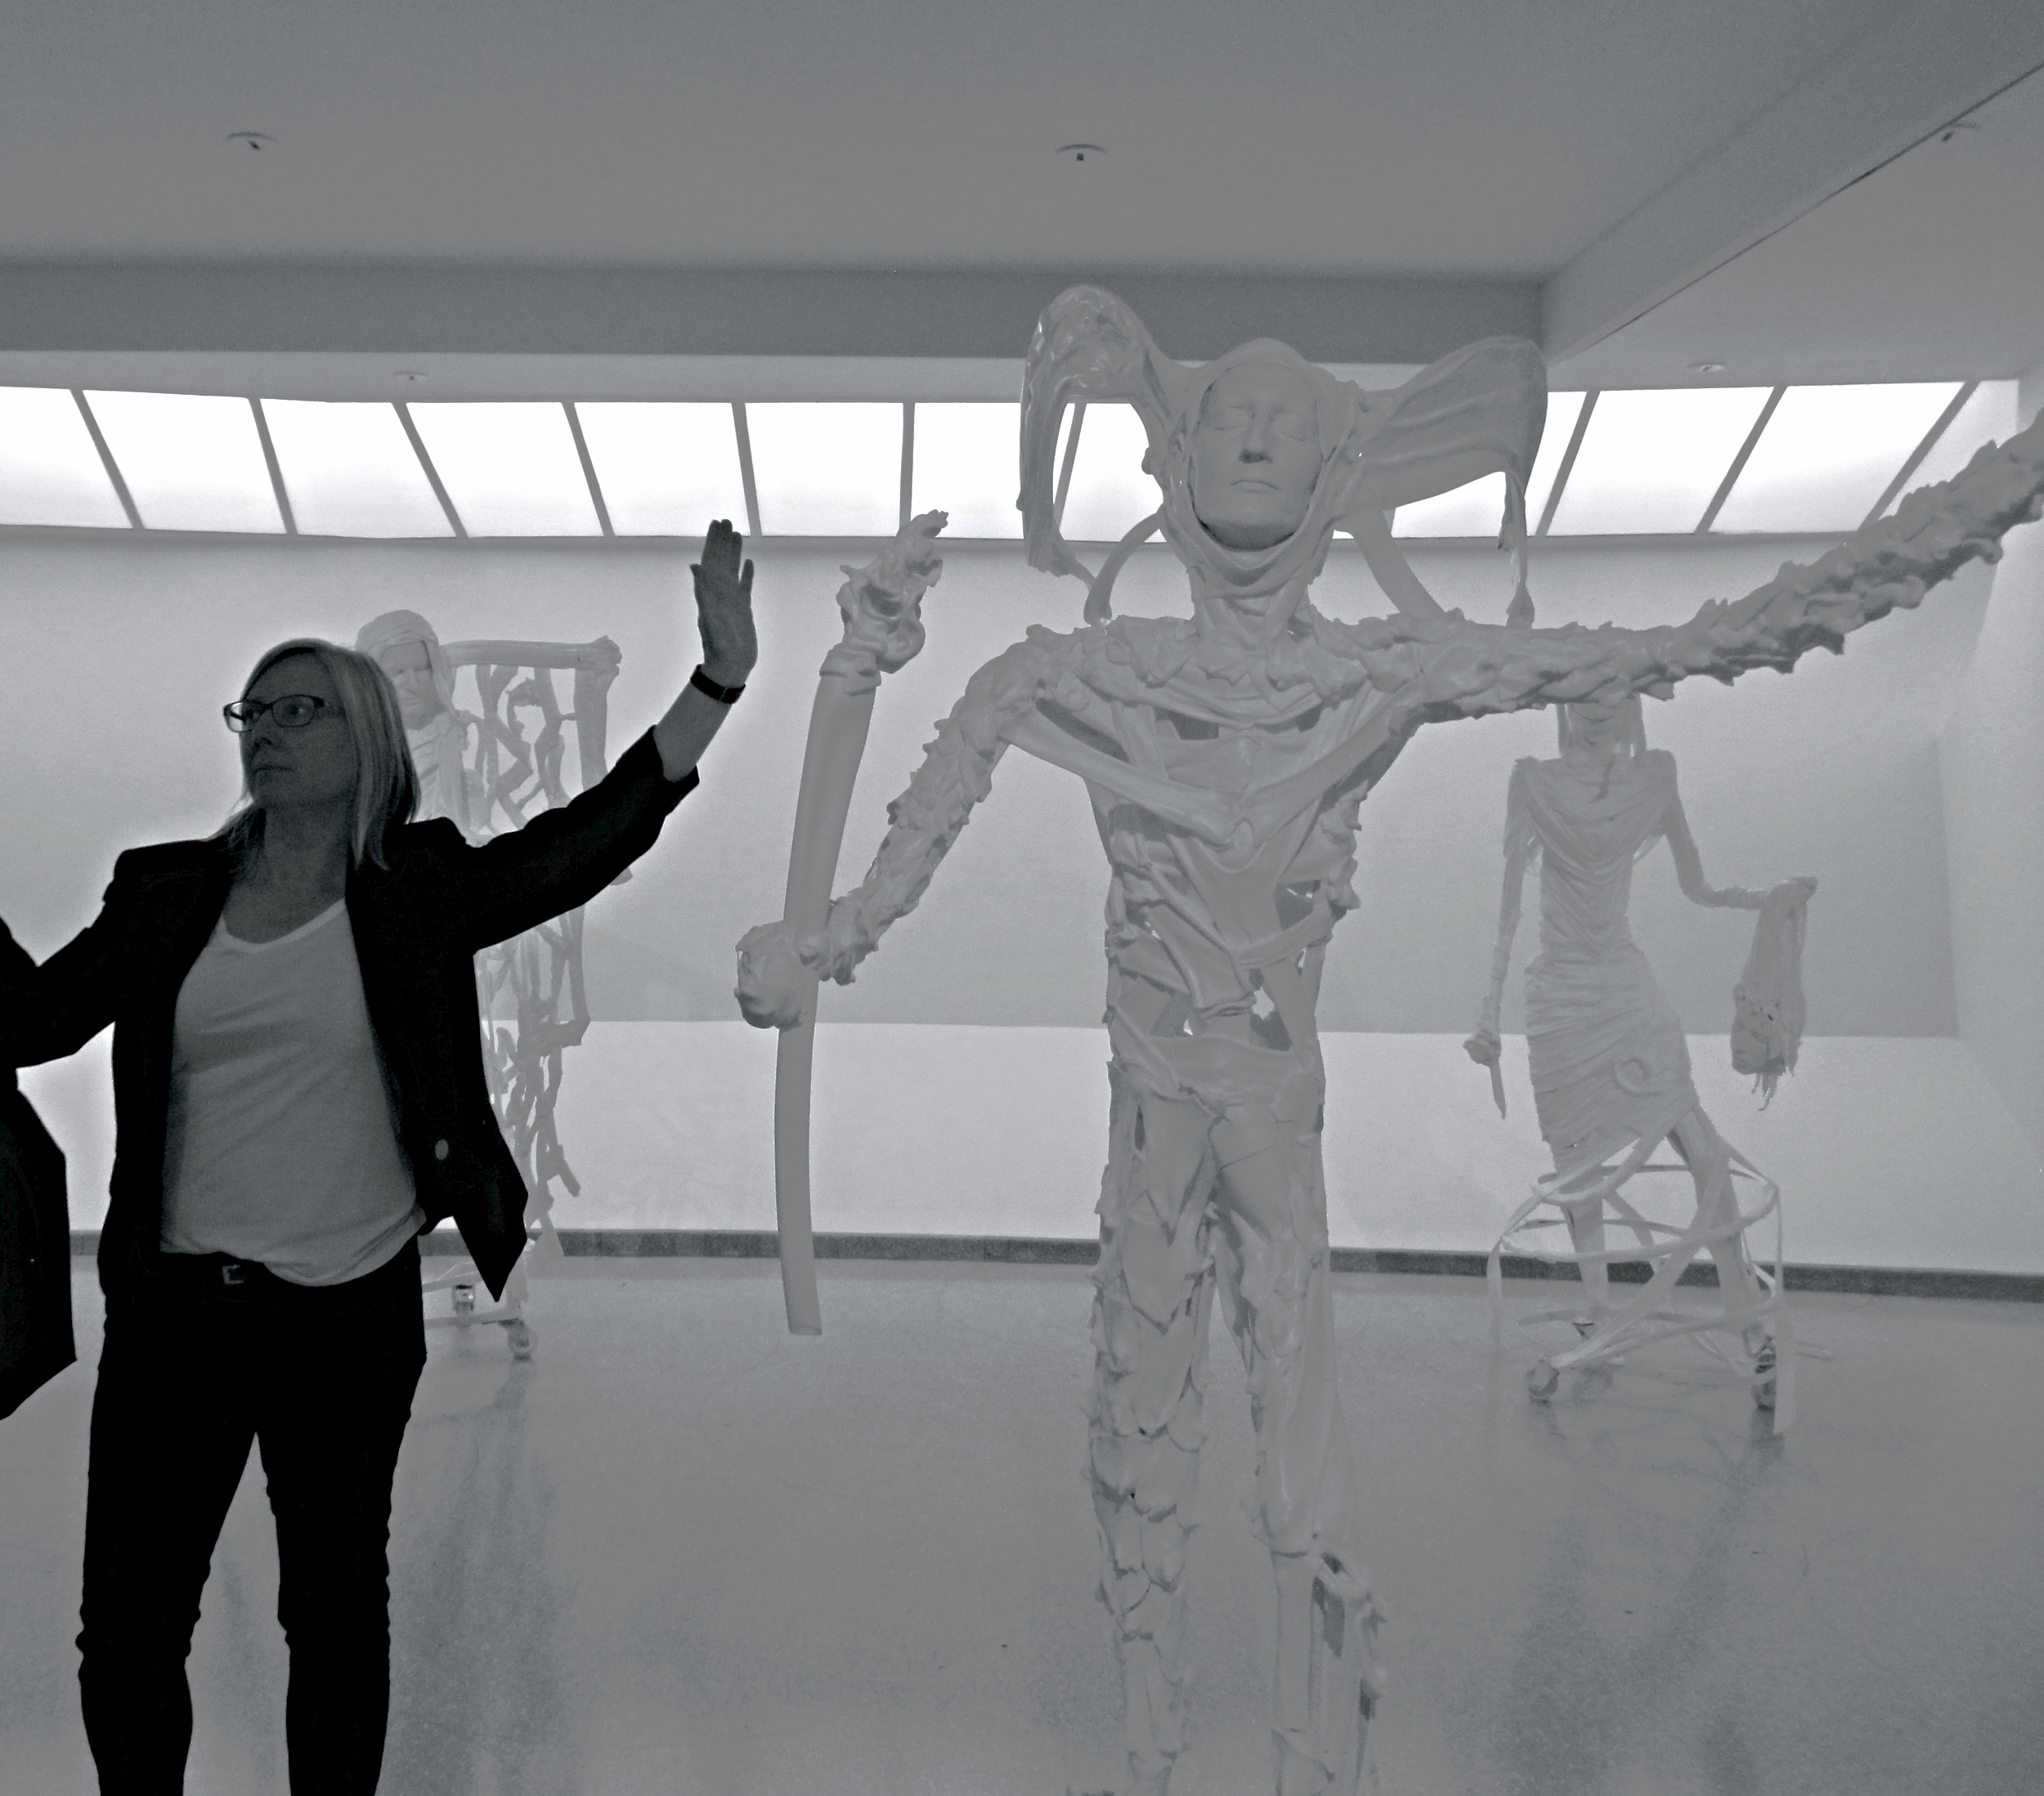 Here is Angela at the Guggenheim Museum, posing alongside some of the contemporary art on exhibition.